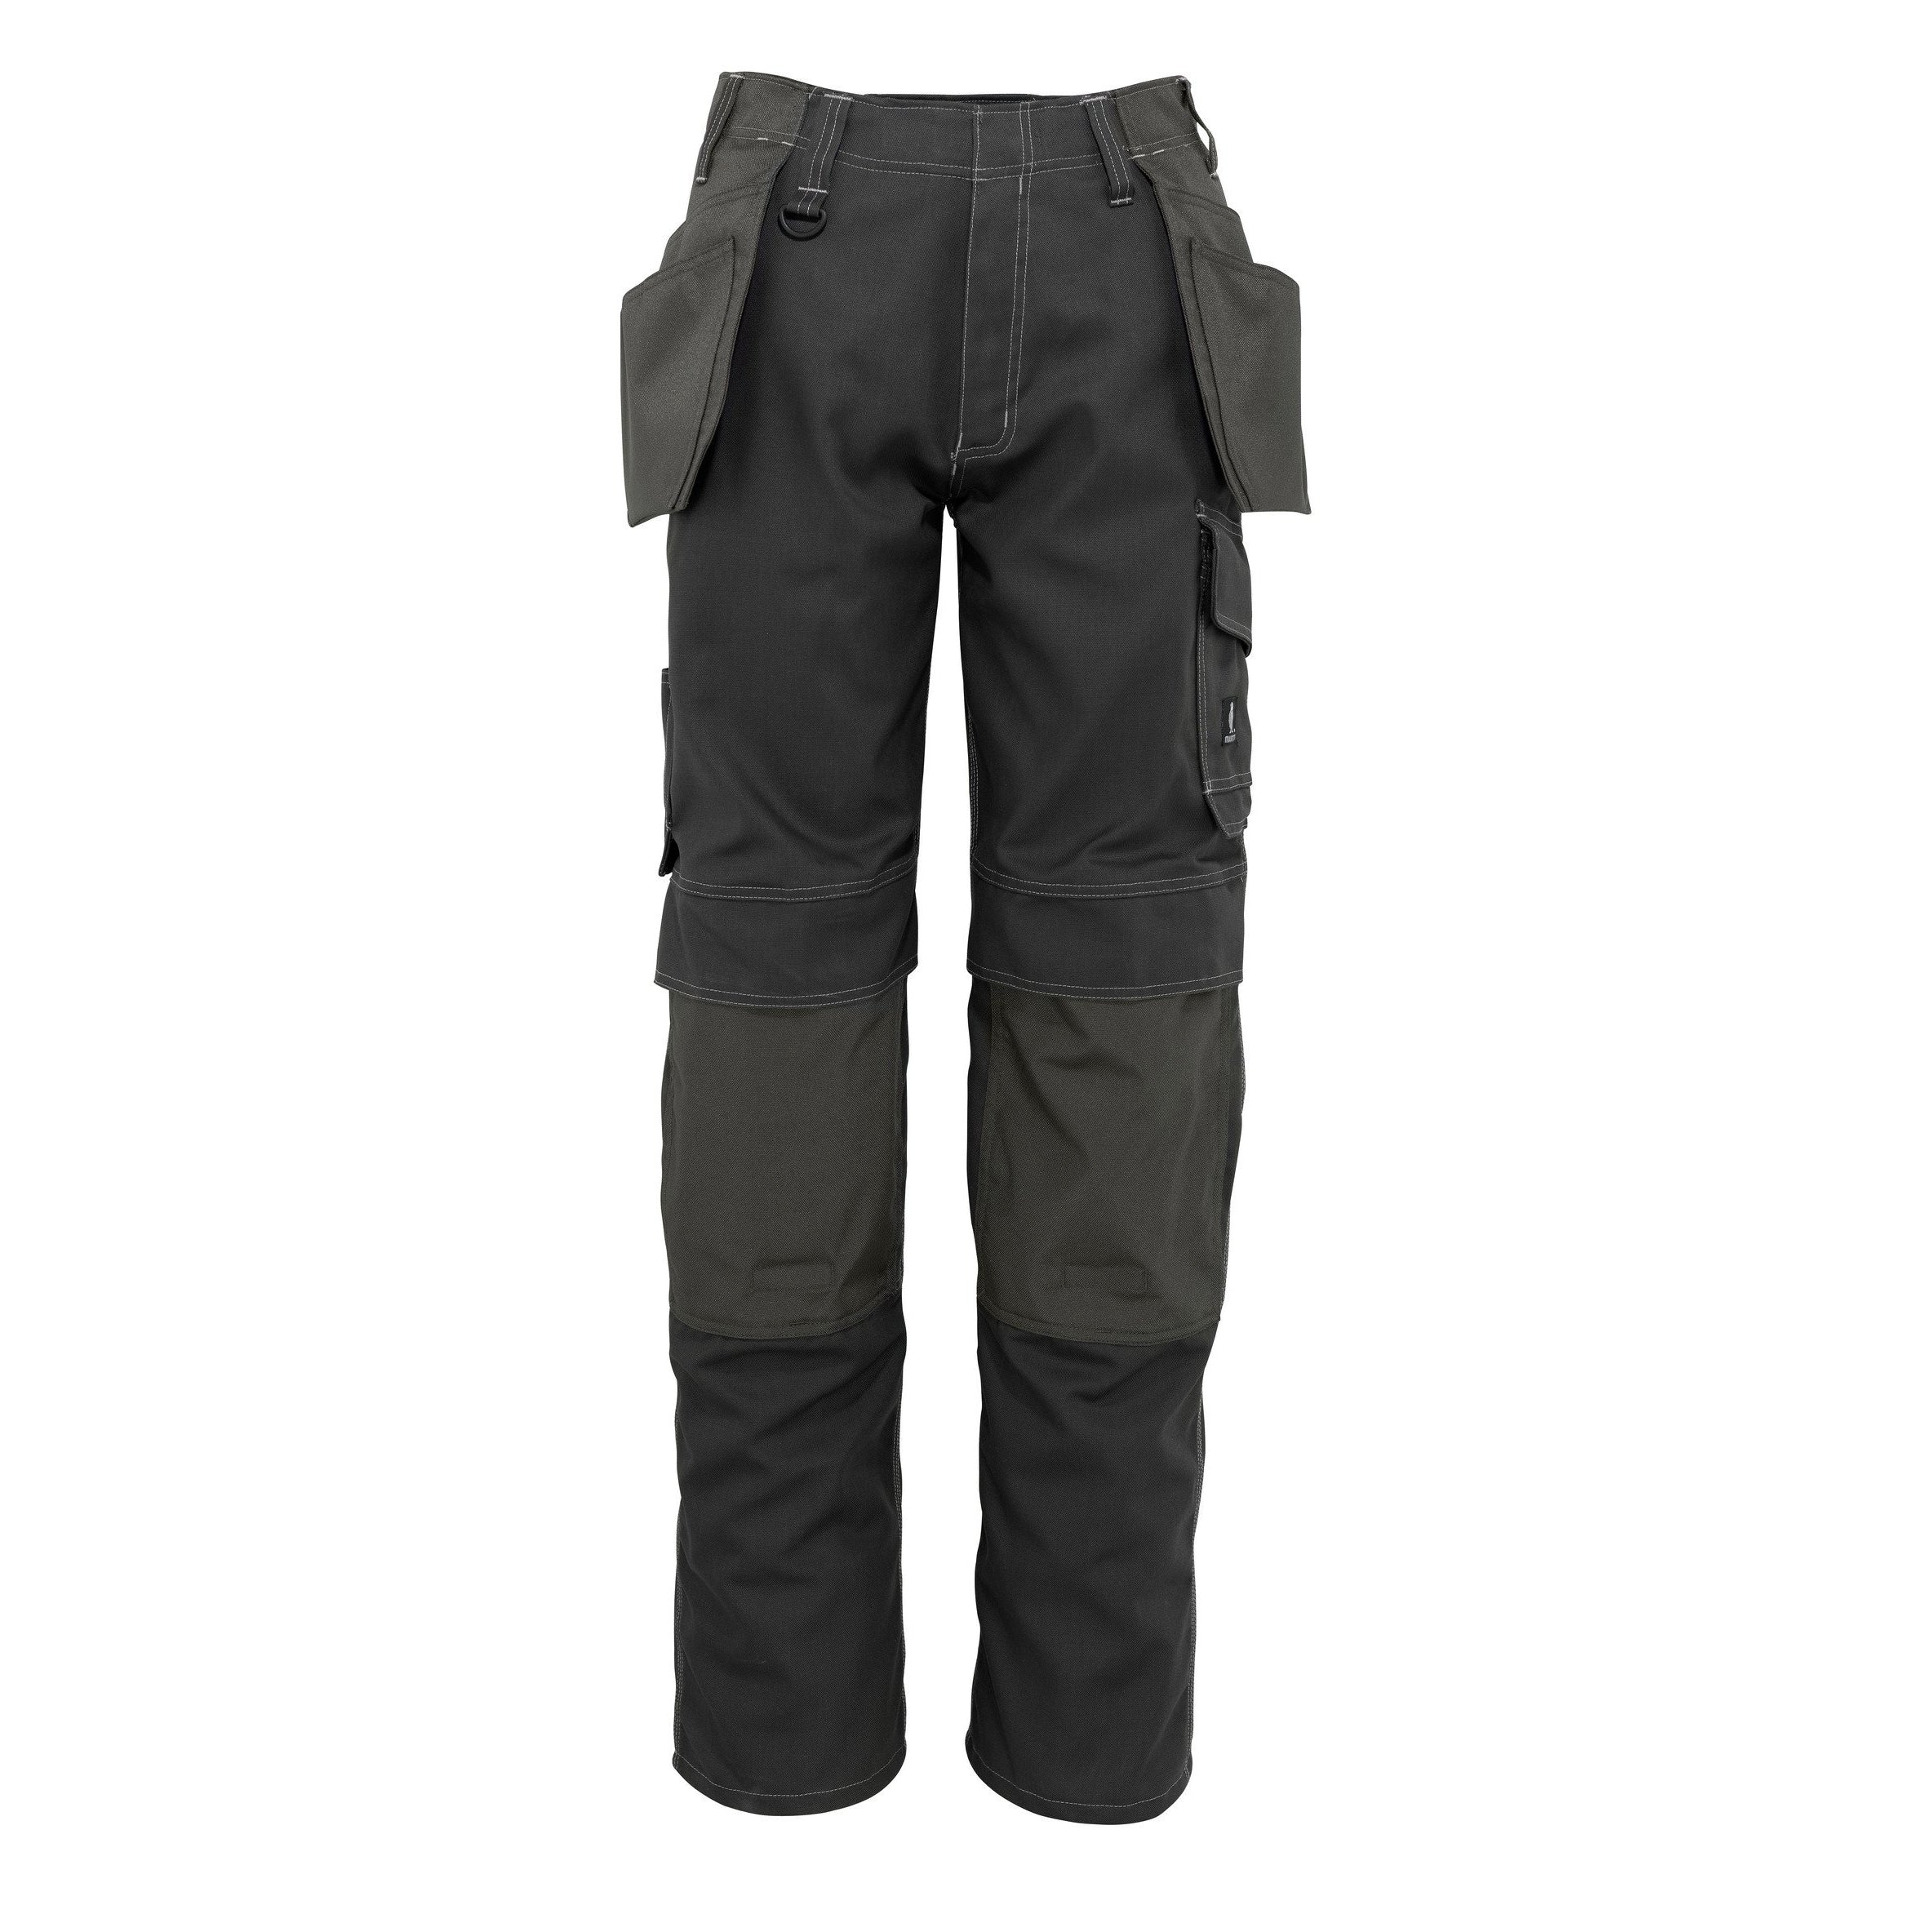 Mascot Springfield Industry Trousers With Kneepad Pockets And Holster Pockets